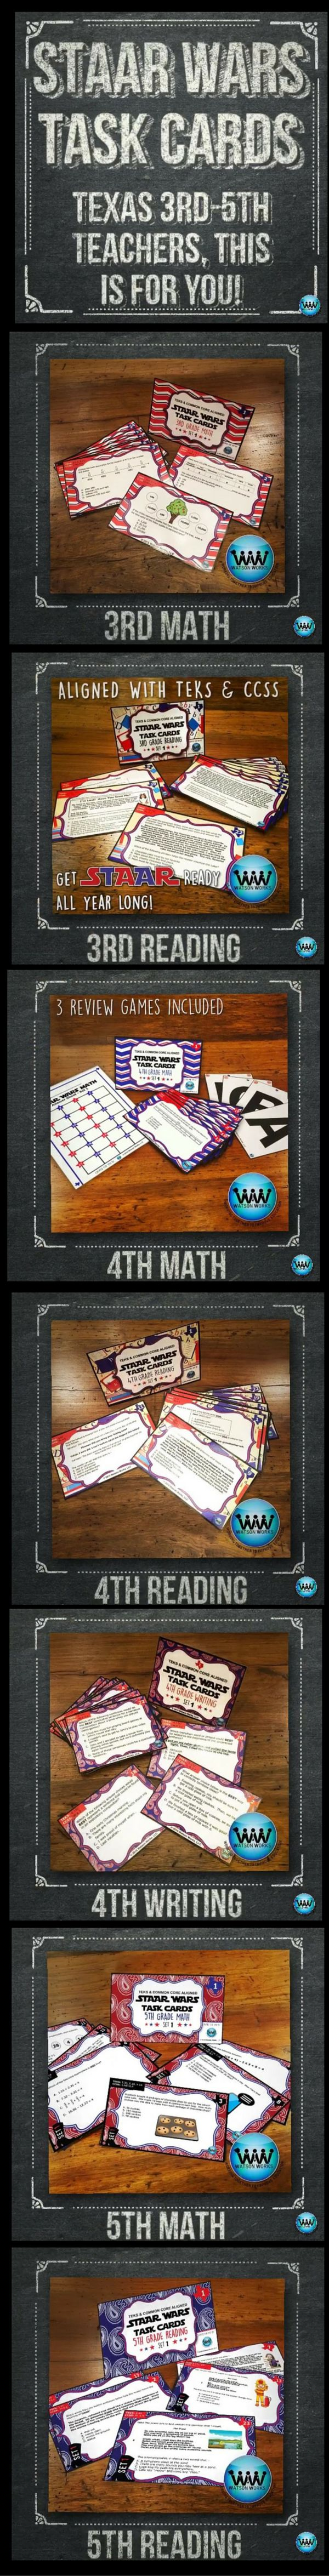 TEXAS 3RD-5TH TEACHERS!!  This is for YOU!!  Want to prep for the STAAR test this year in such a fun, engaging way that your students won't even realize they're doing test prep?  If so, our STAAR Wars Task Cards are just what you need!  Available for 3rd-5th grades (math, reading, writing*).  #texasteachers #staar #iteachthird #iteachfourth #iteachfifth #readingteachers #mathteacher #writingteacher